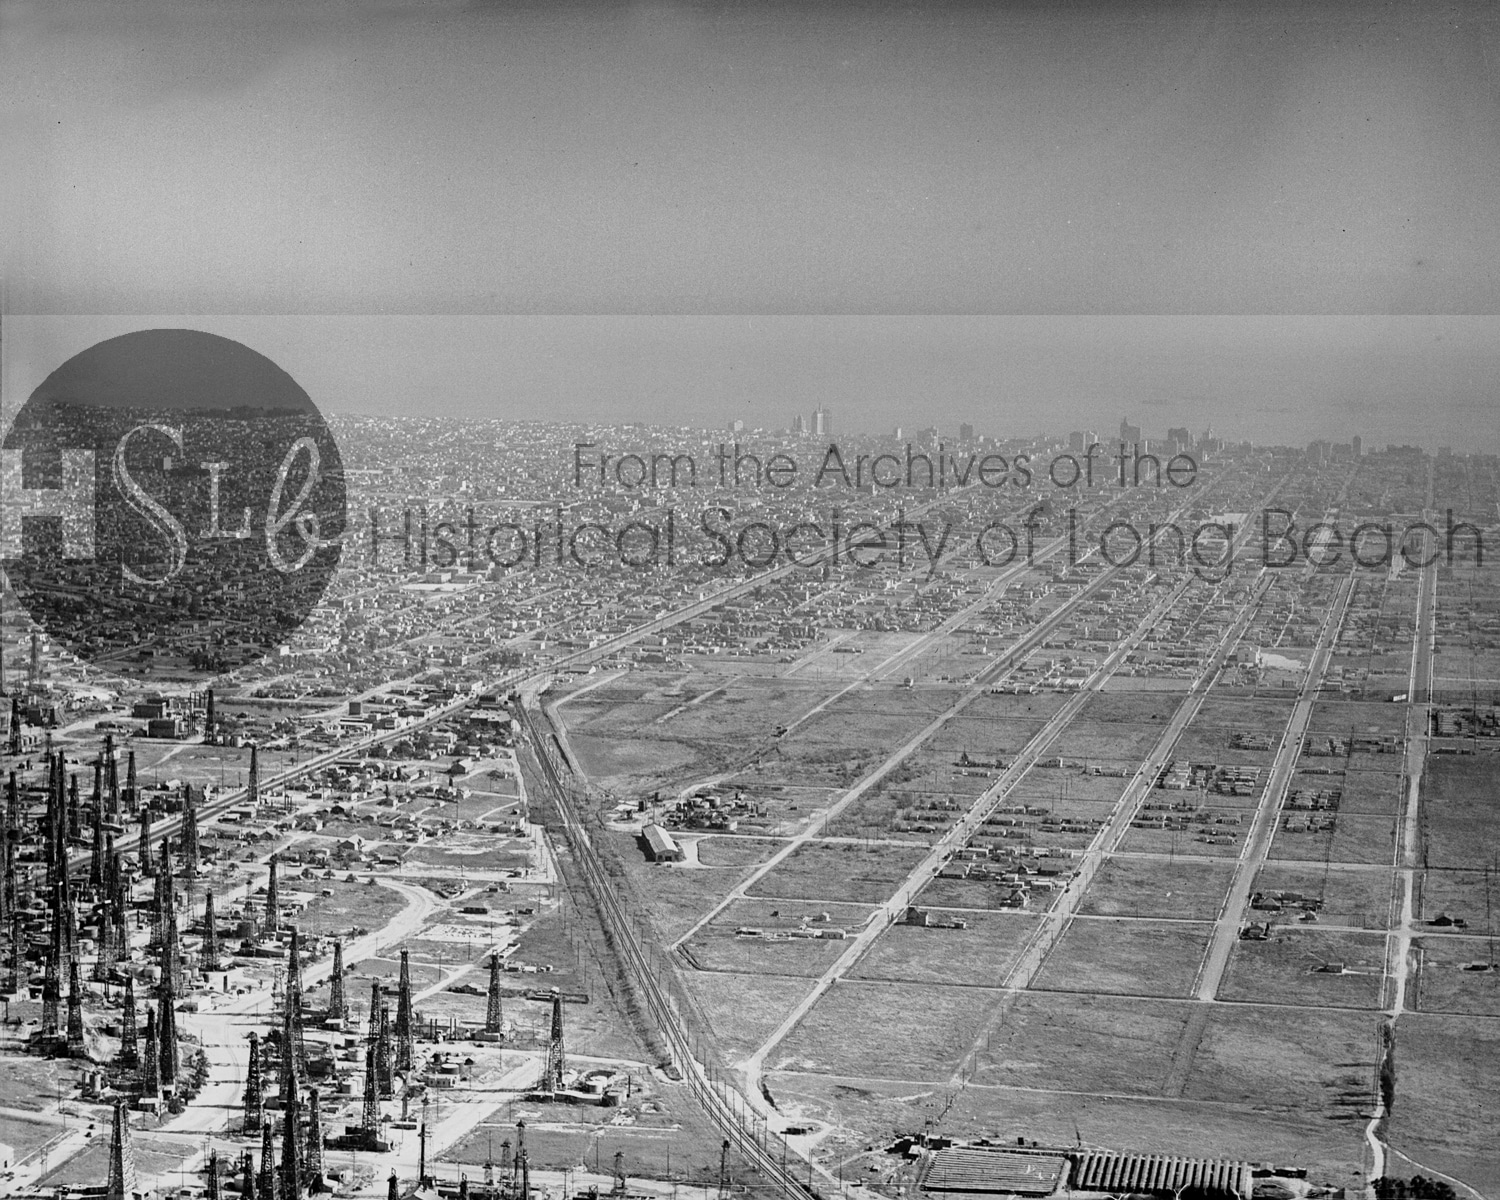 Historical arial photograph of long beach